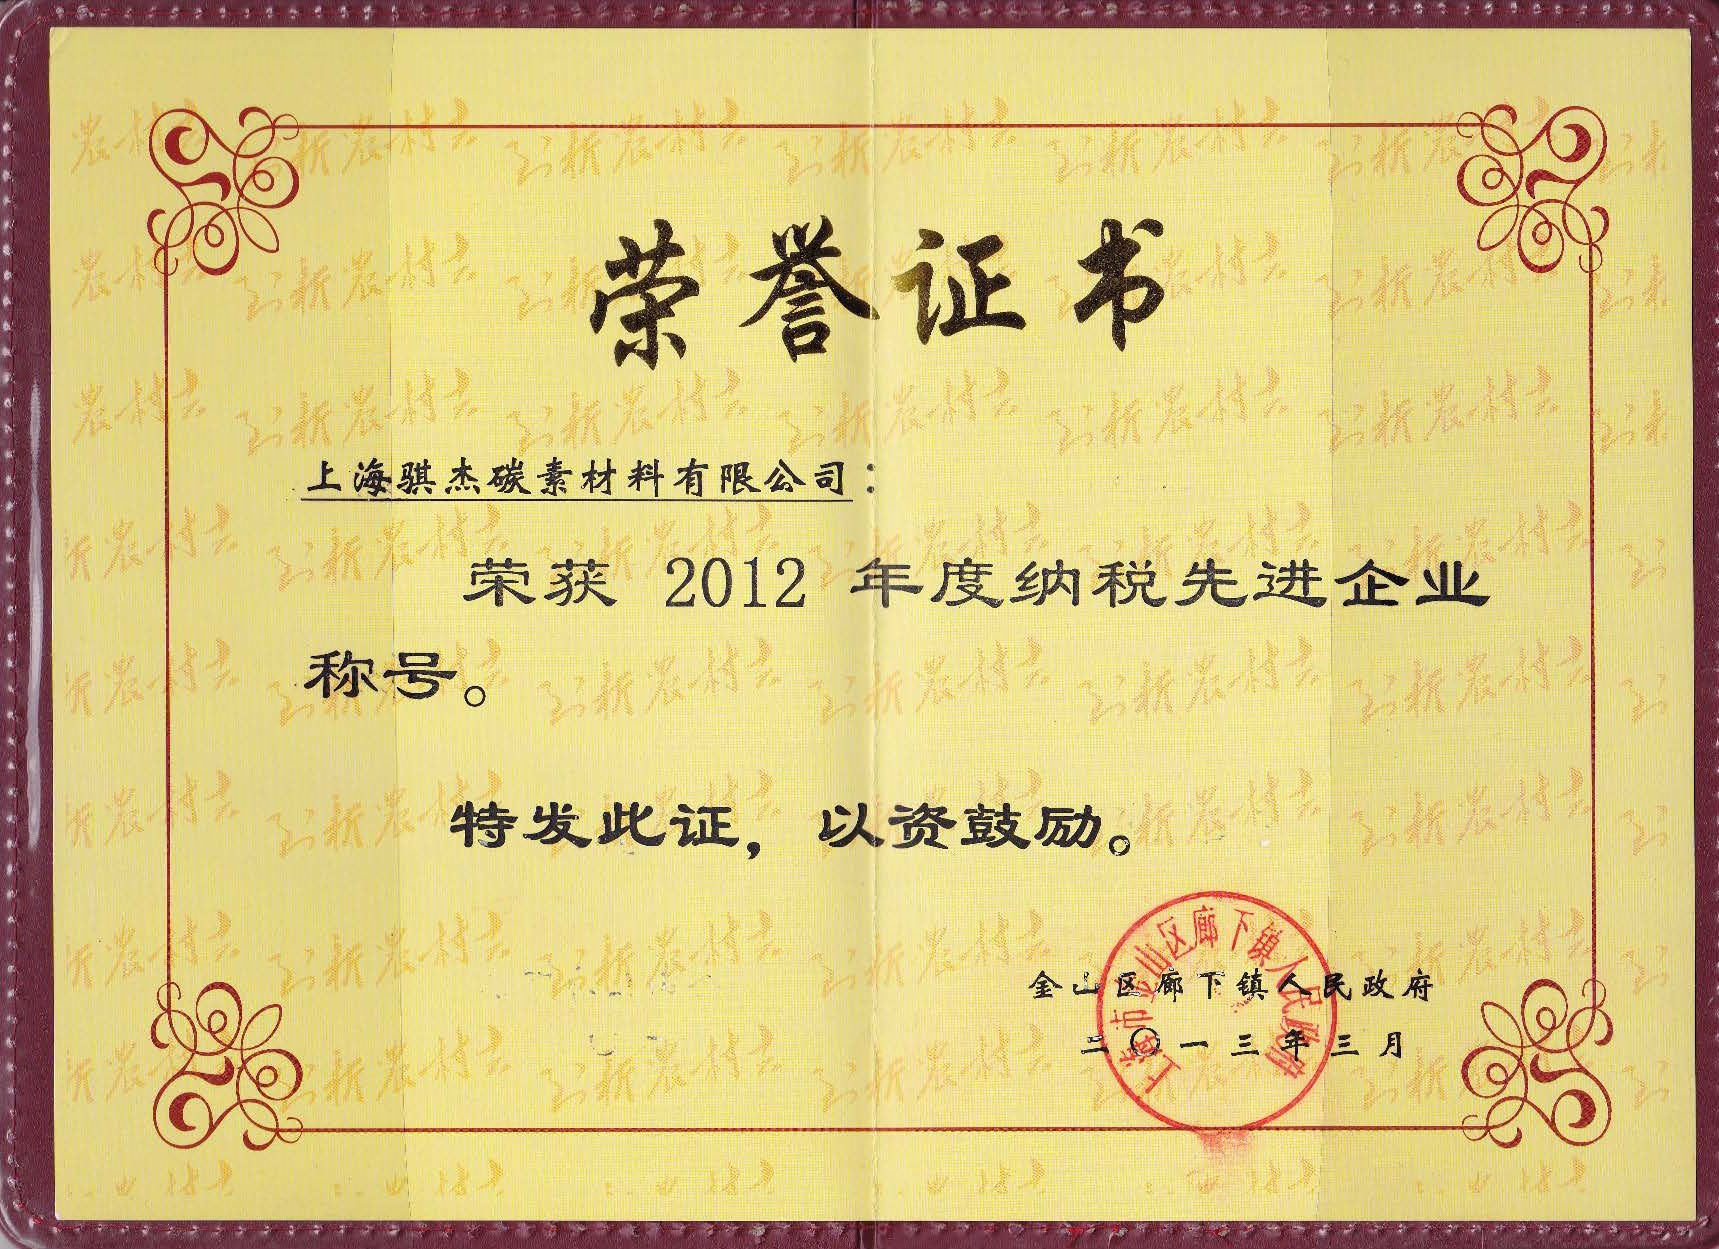 Award from Shanghai Jinshan District government in 2012